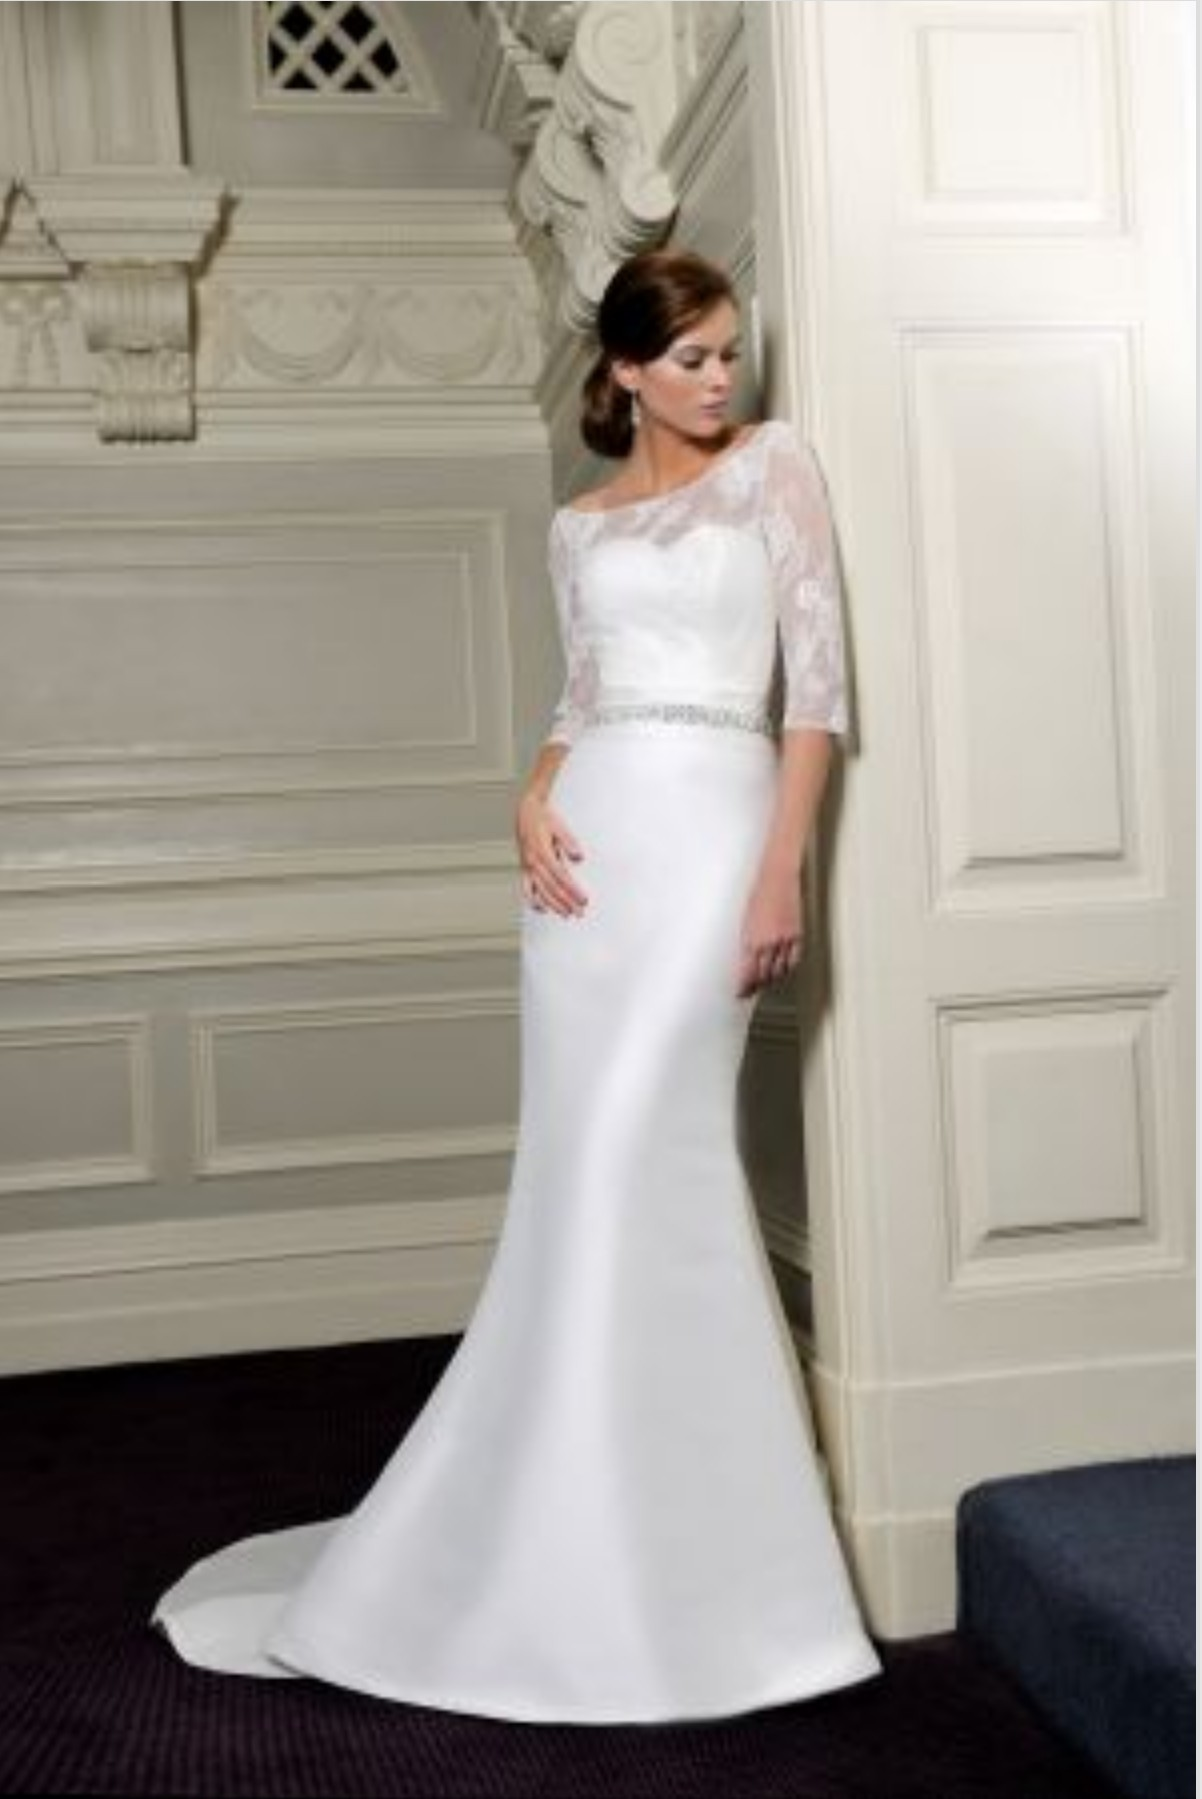 Margaret moreland second hand wedding dress on sale for Second hand wedding dresses for sale